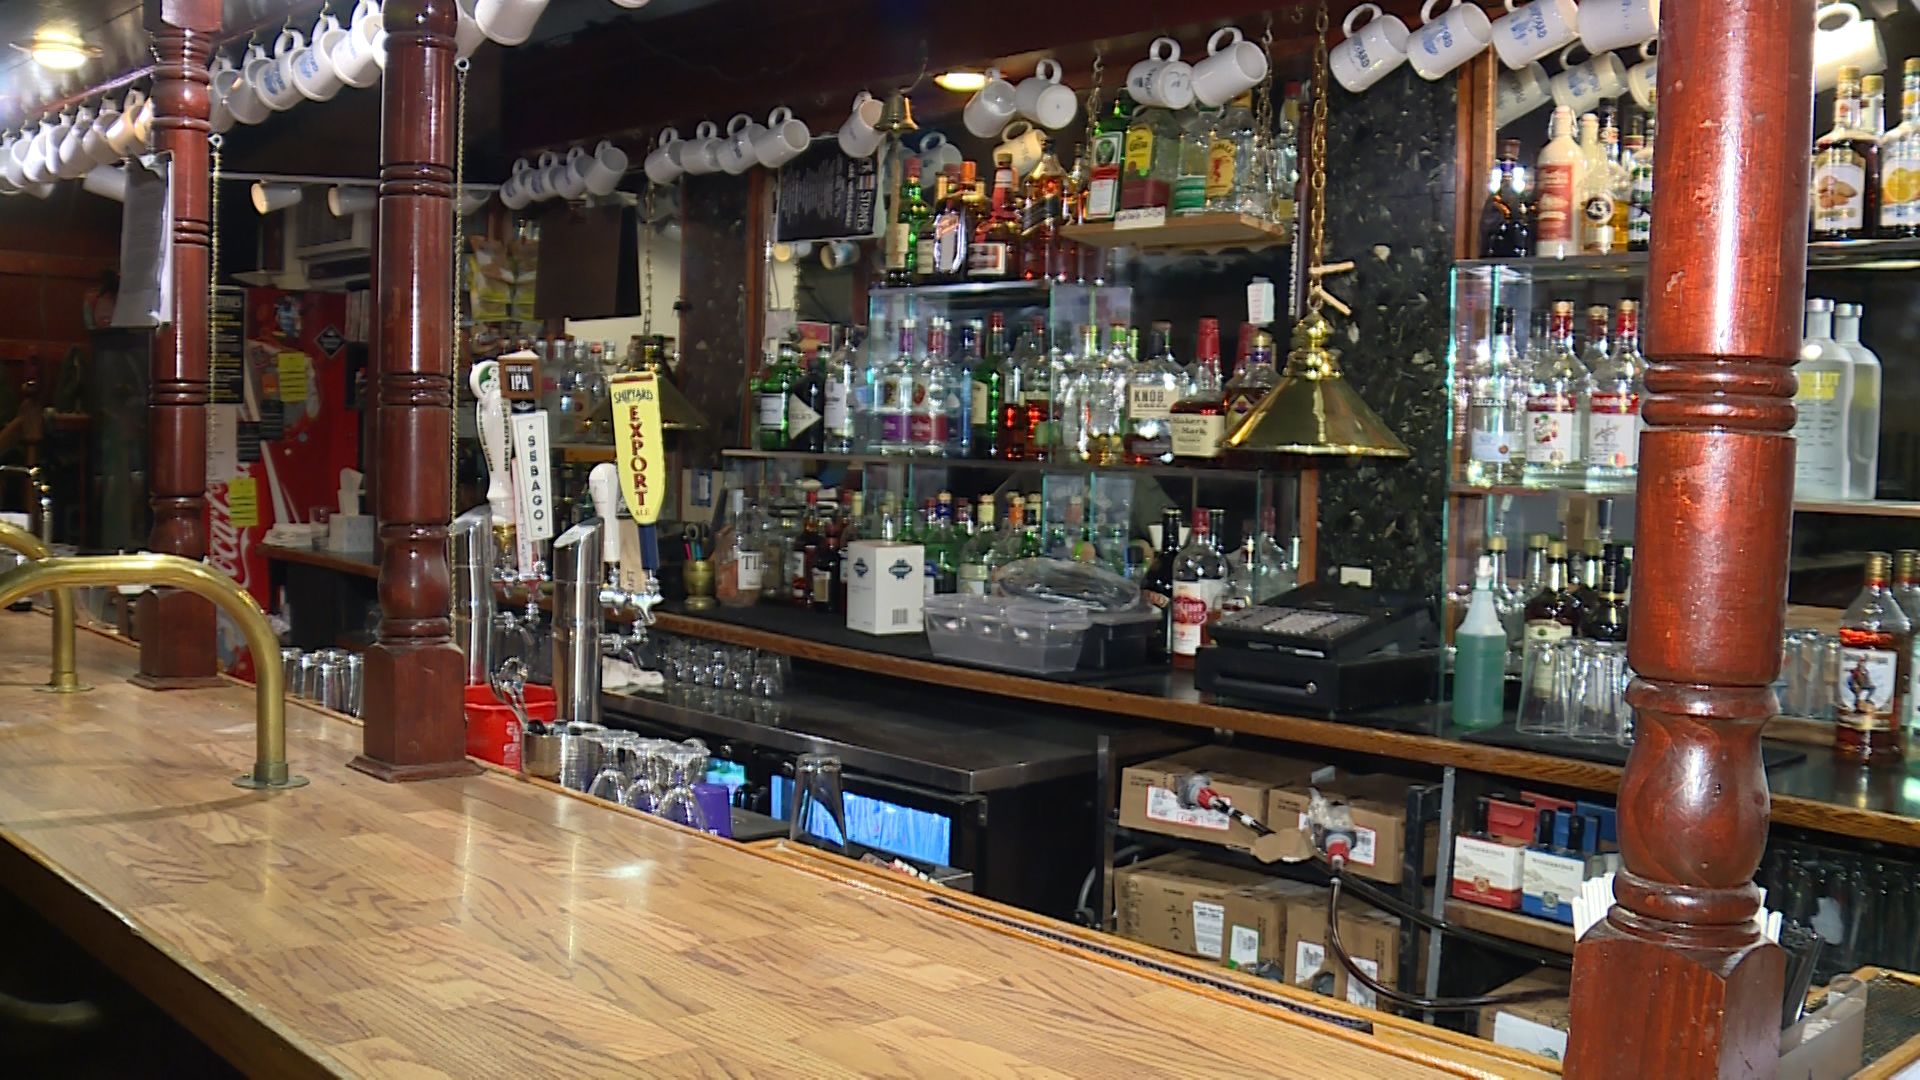 Maine bar owners worried spike in COVID-19 cases could lead to reopening delay